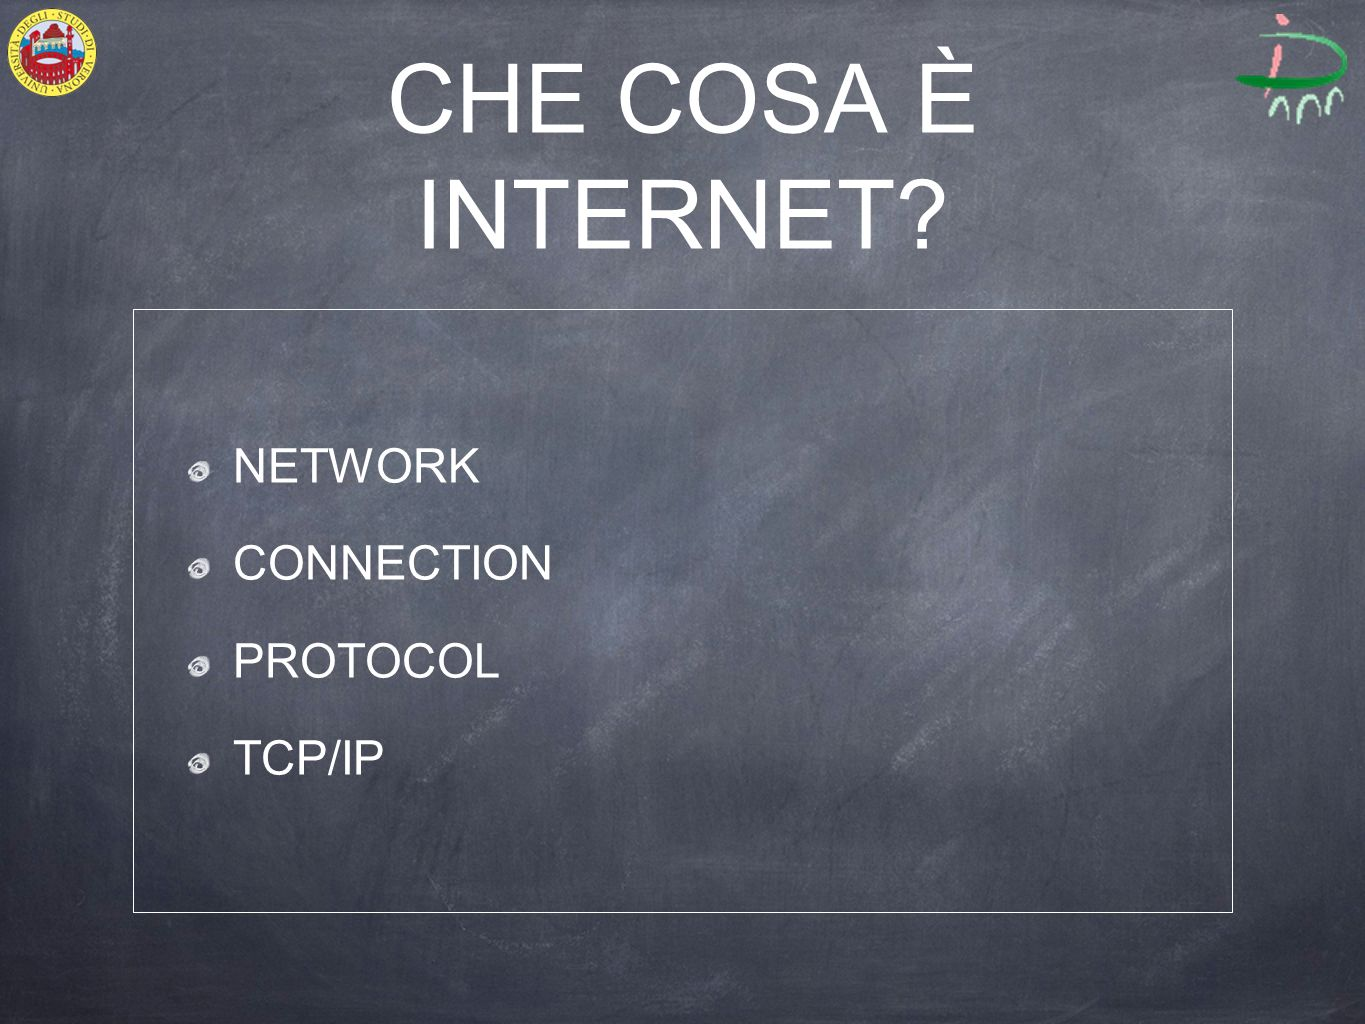 CHE COSA È INTERNET? NETWORK CONNECTION PROTOCOL TCP/IP